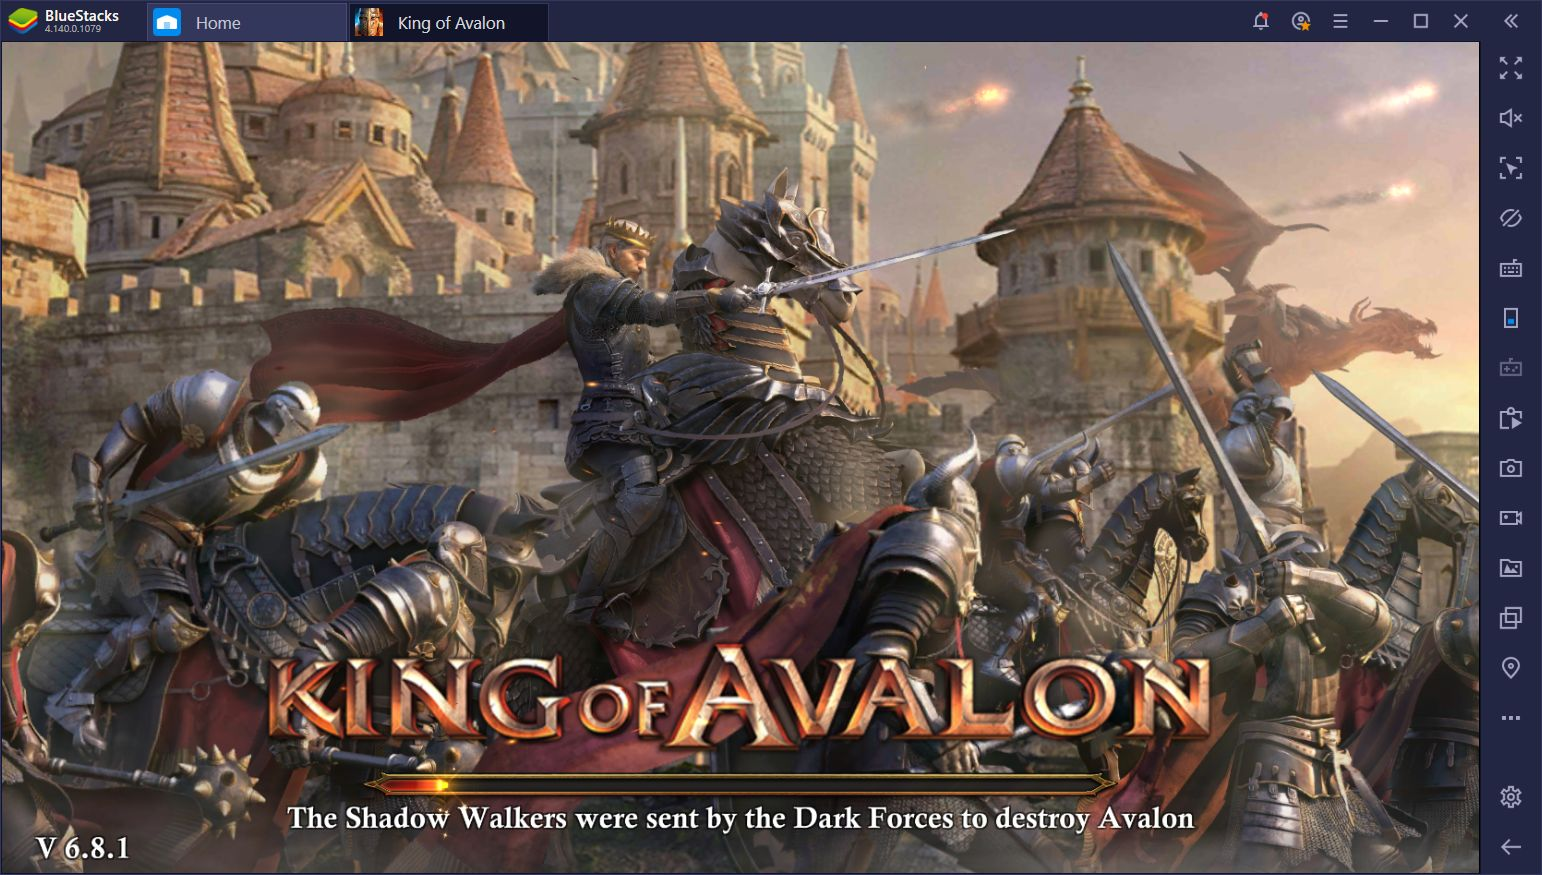 BlueStacks Macros for King of Avalon on PC